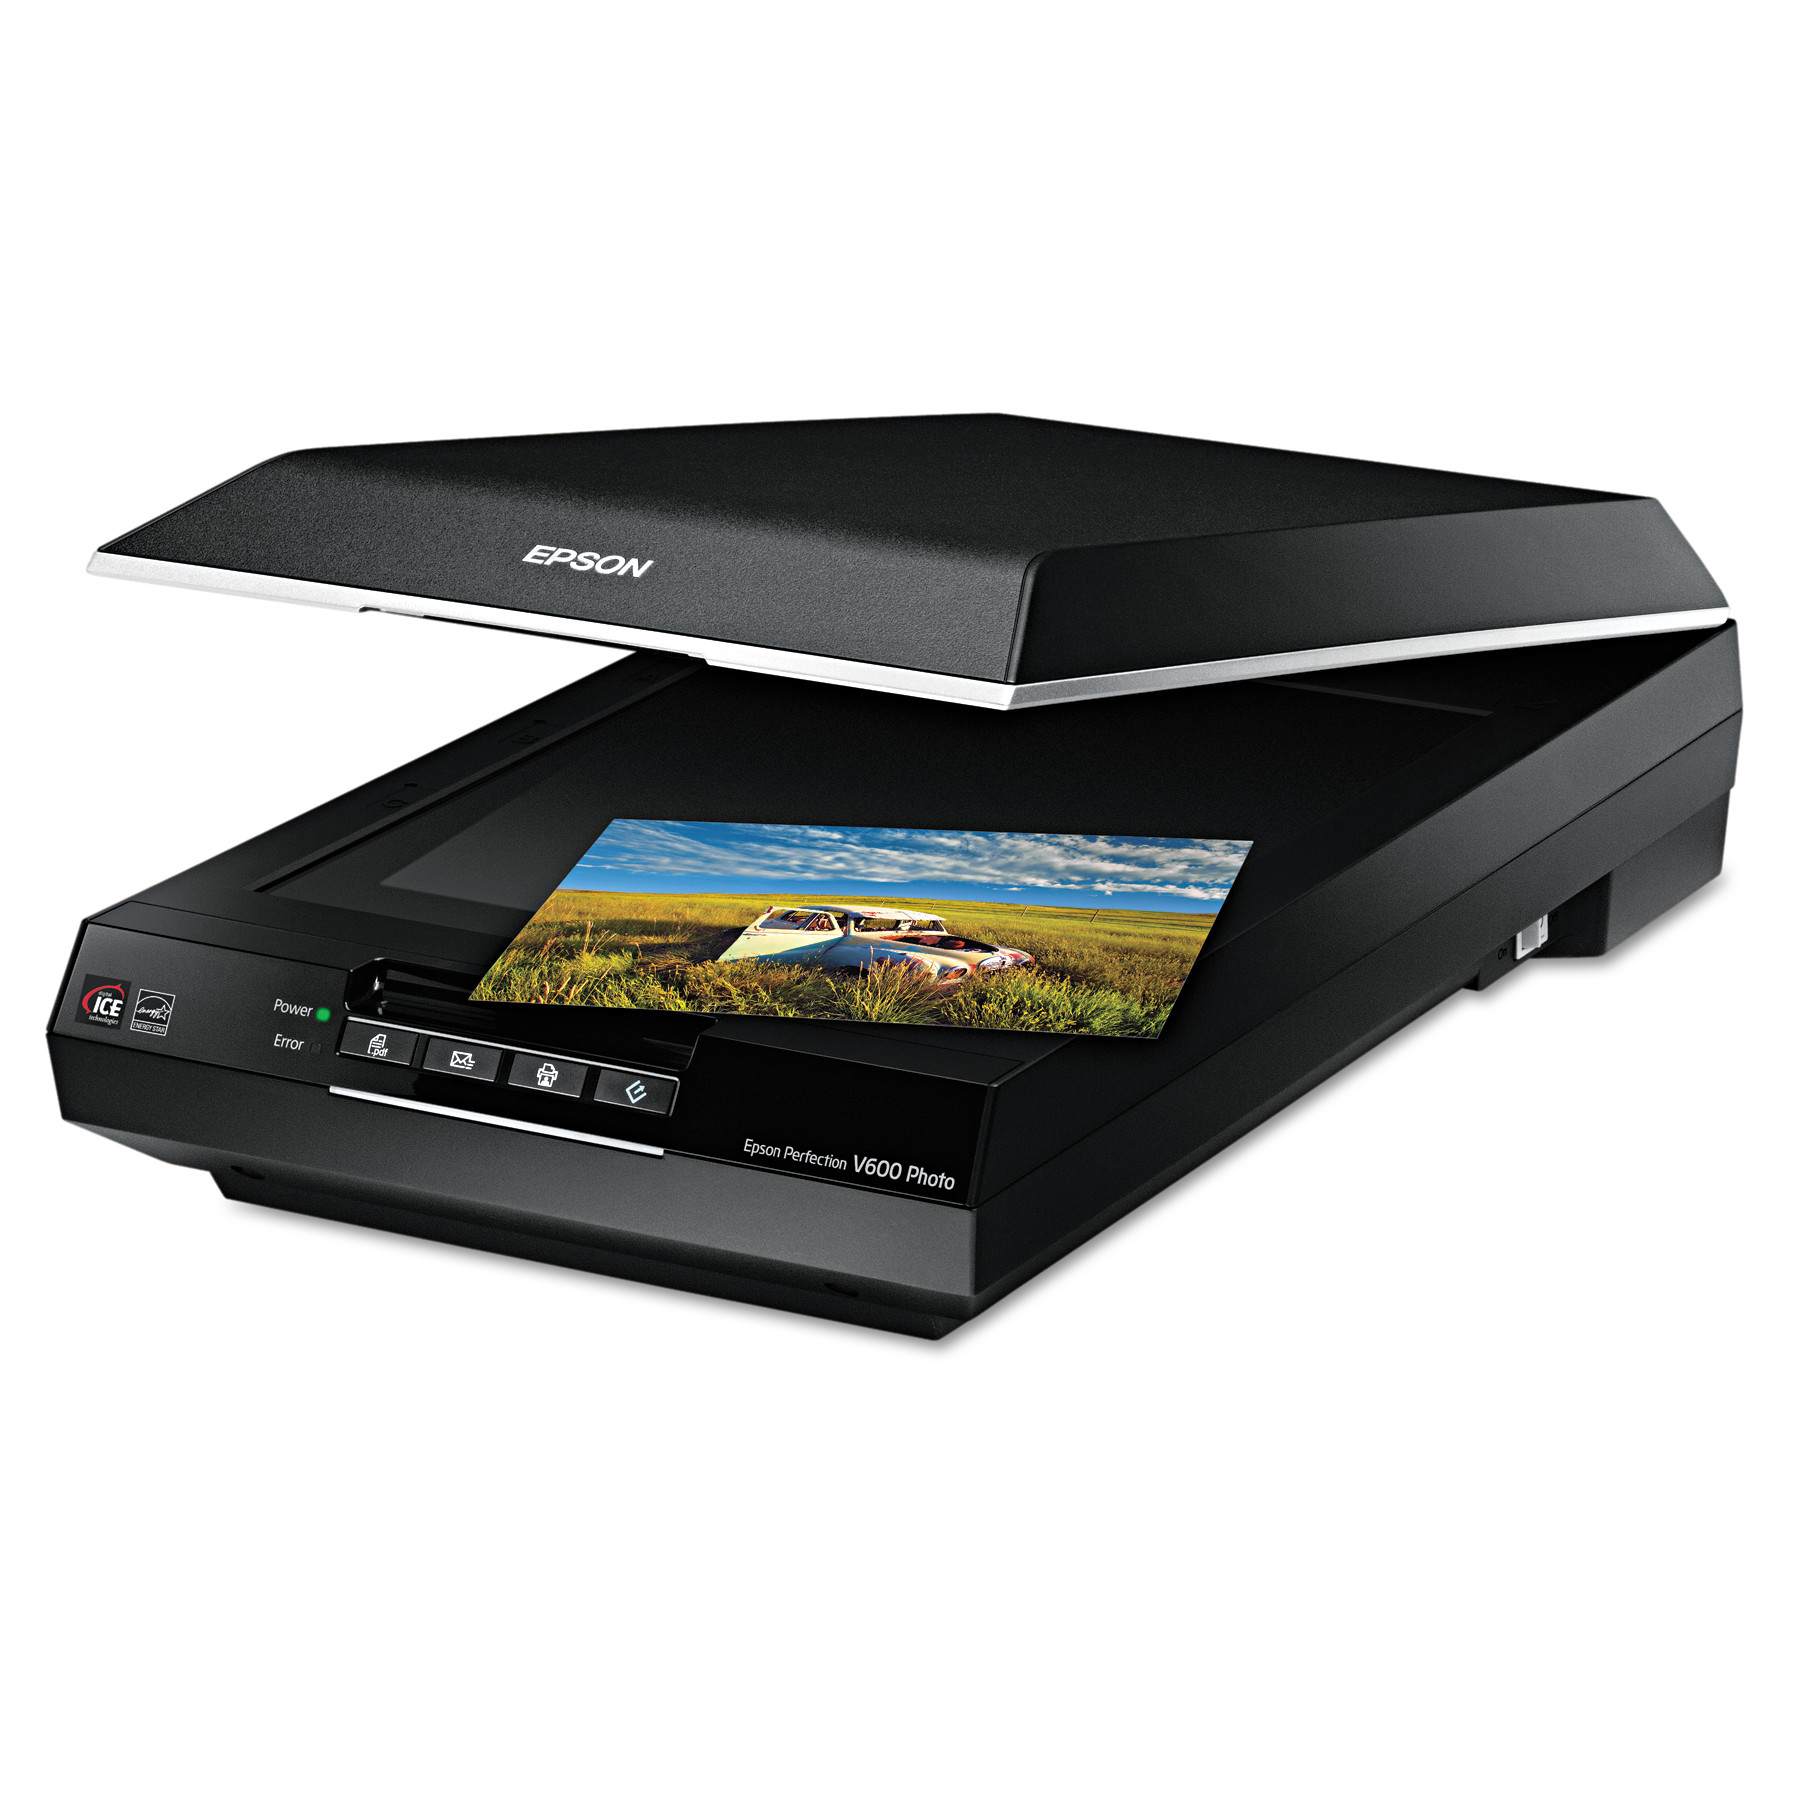 Epson Perfection V600 Photo Color Scanner, 6400 x 9600 dpi, Black